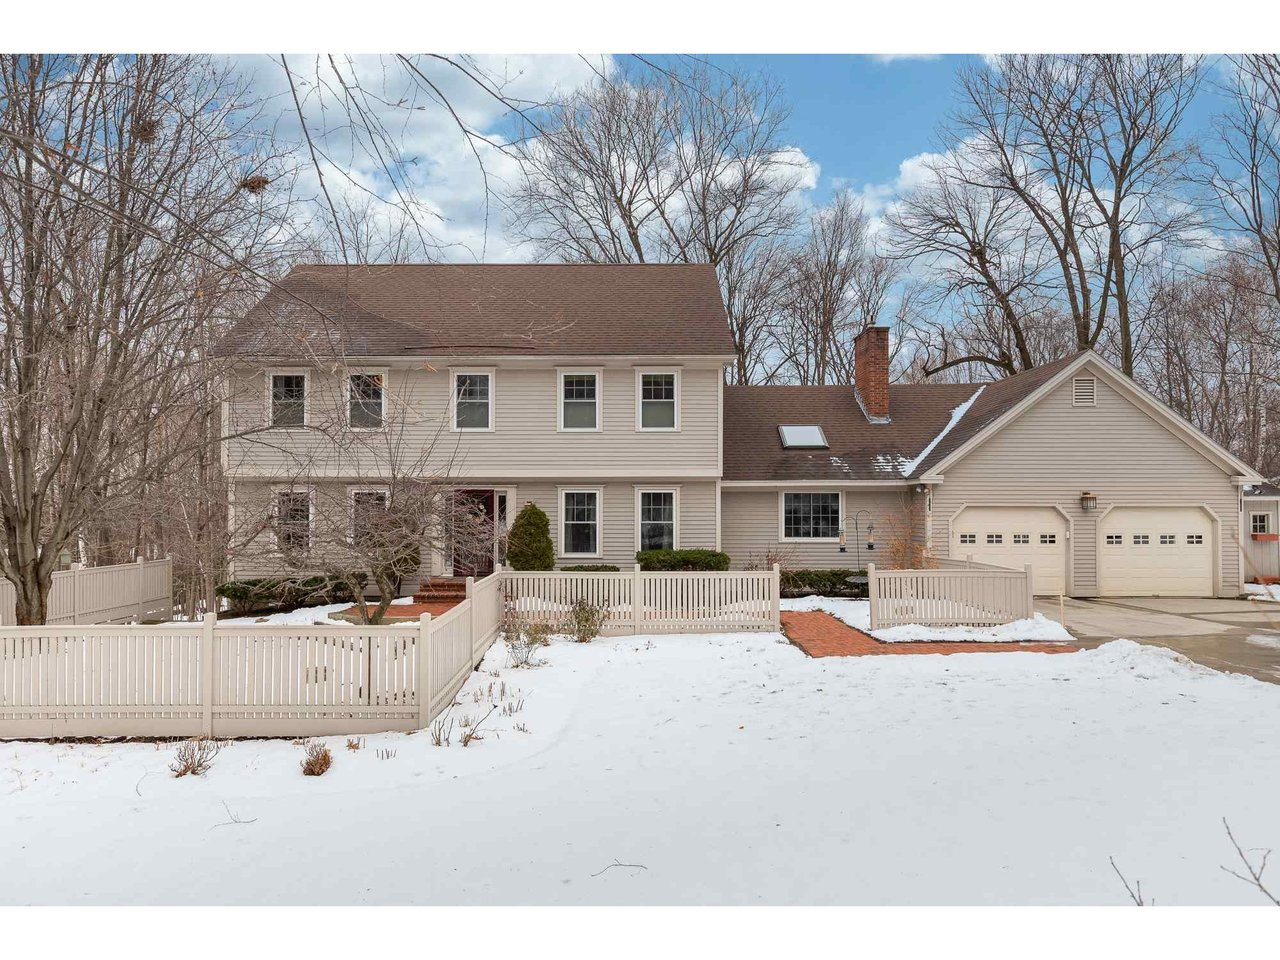 11 Pheasant Way, South Burlington